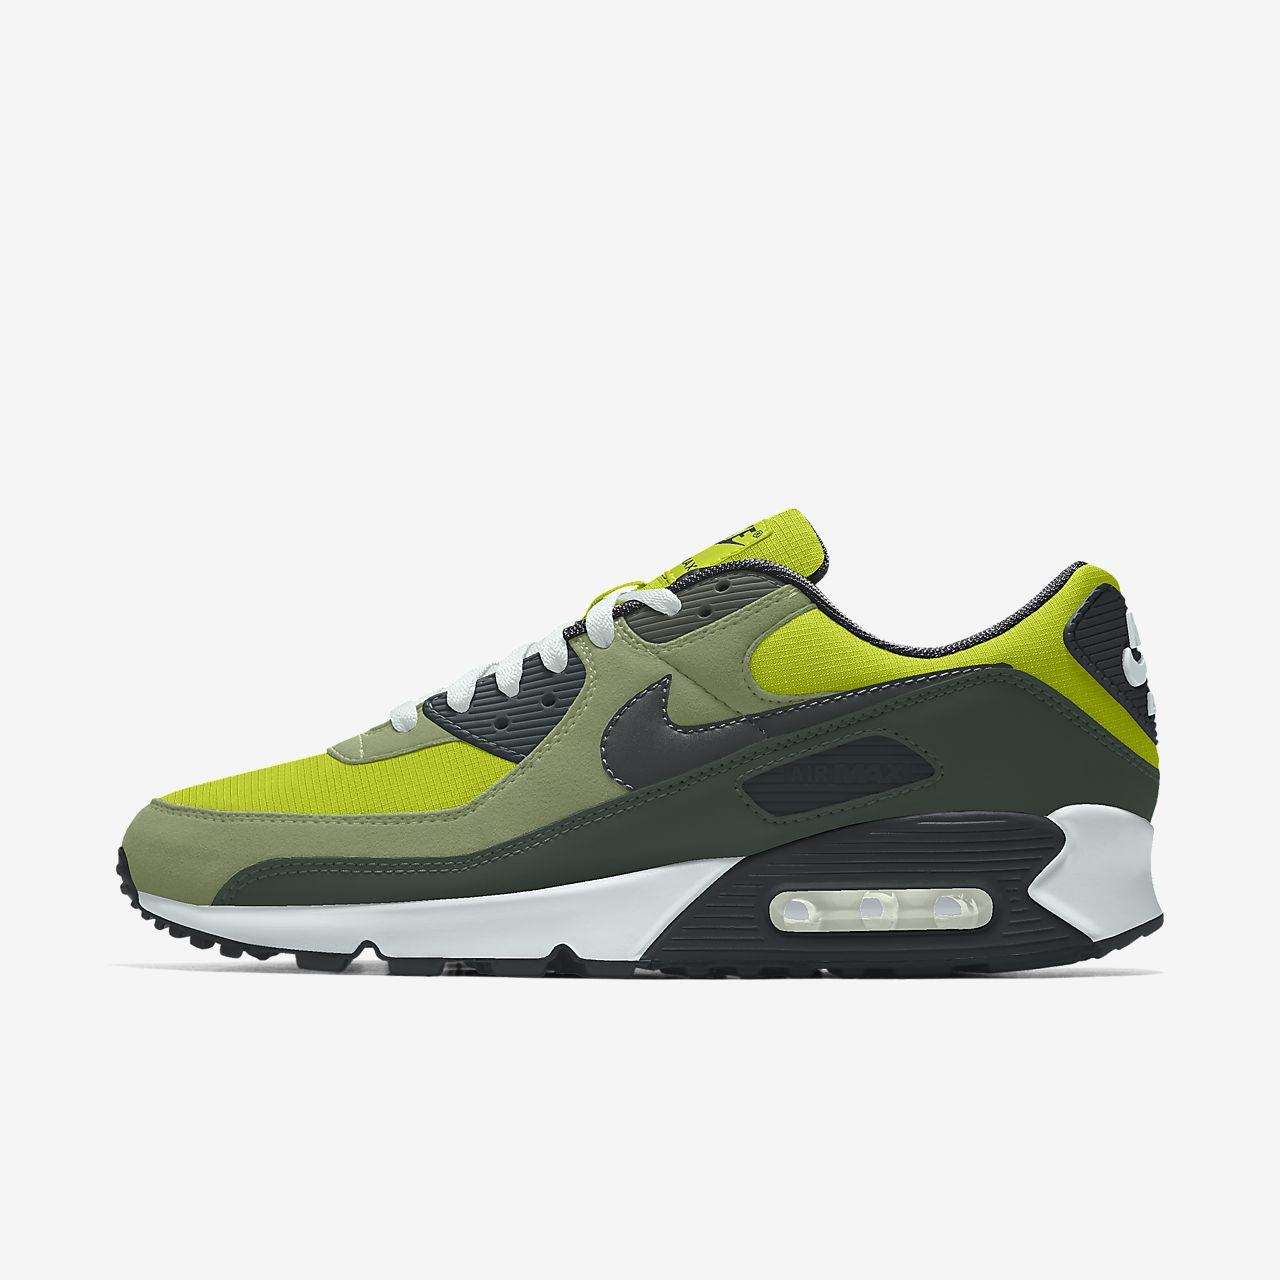 Scarpa lifestyle personalizzabile Nike Air Max 90 Unlocked By You Uomo